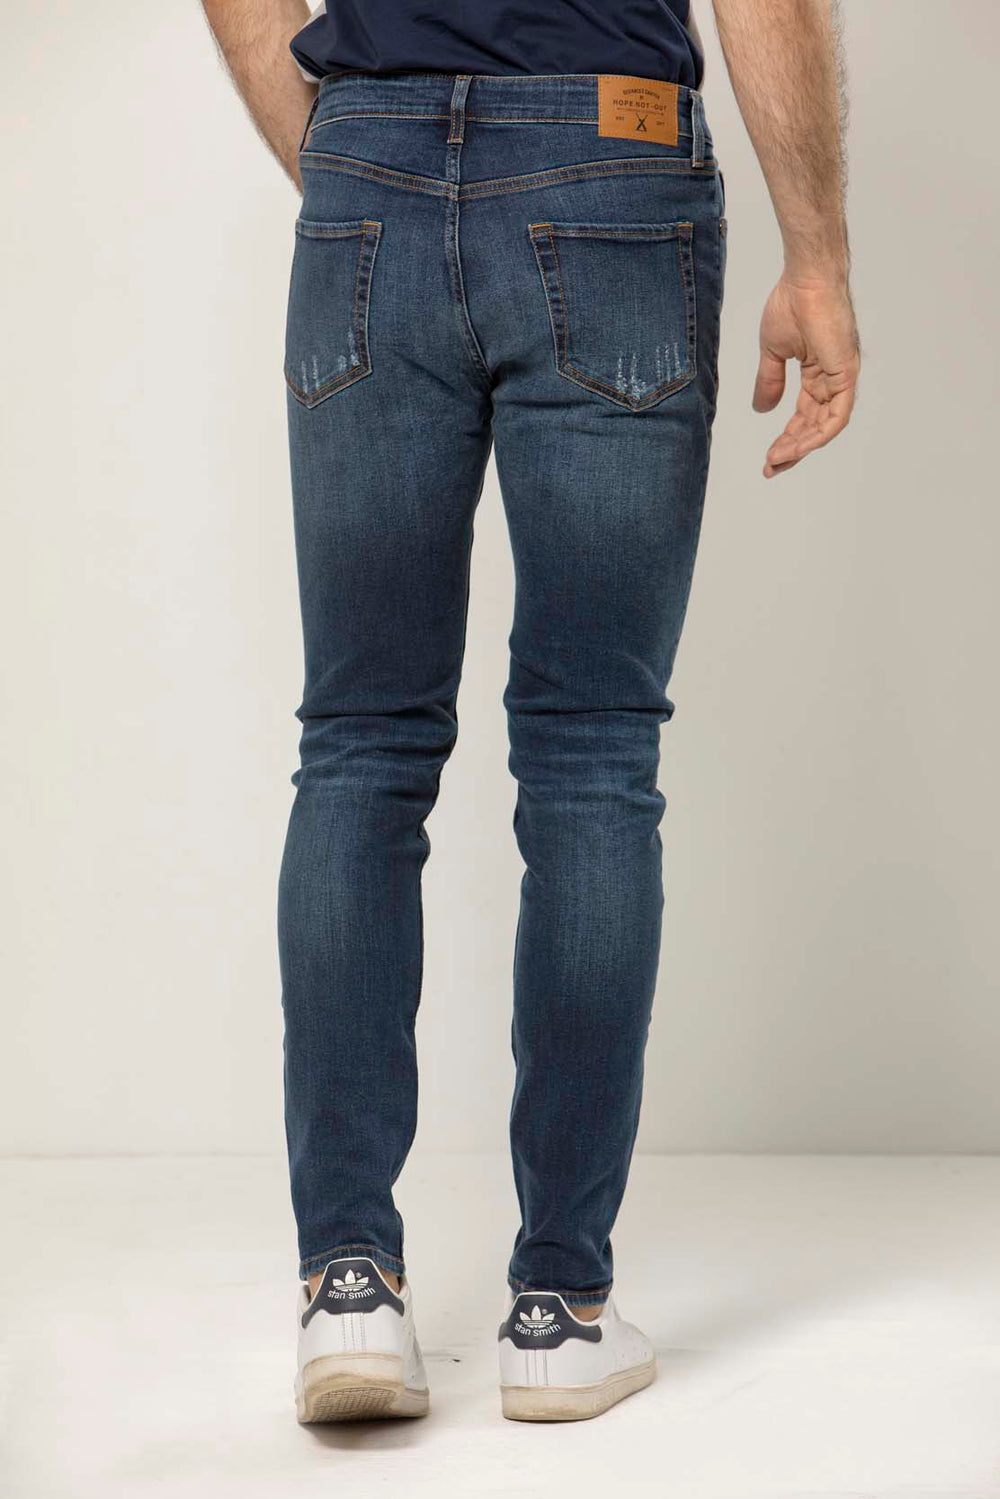 Blue Denim HMDBS20005